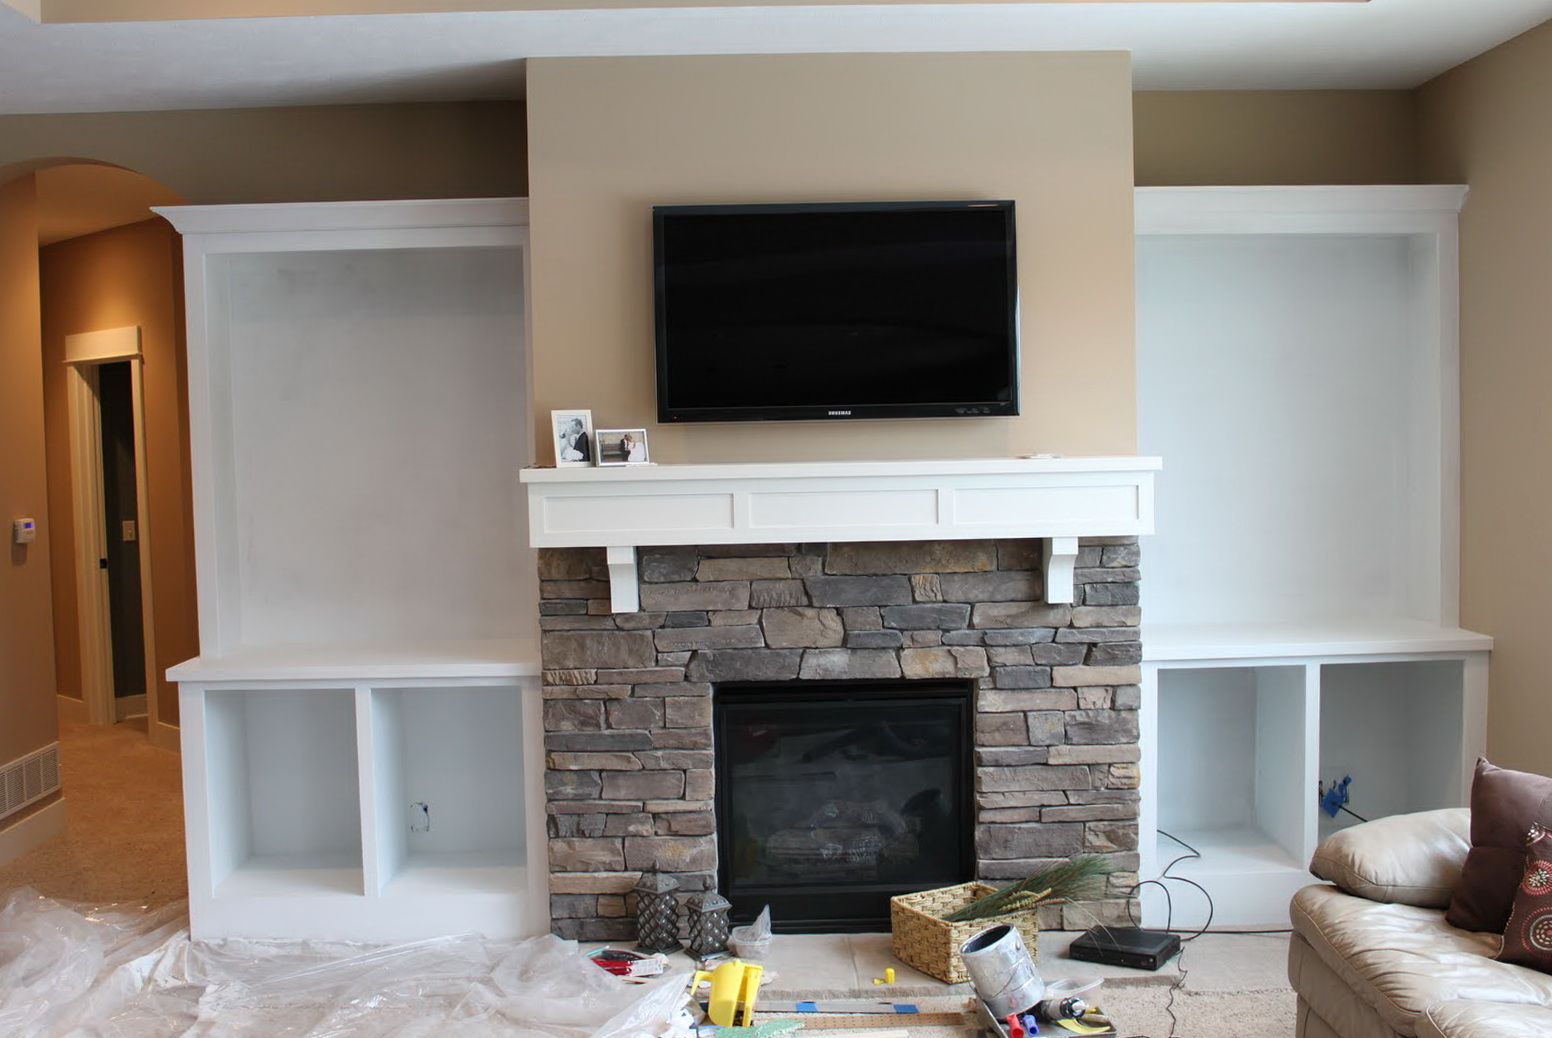 Built Ins Around Fireplace Diy